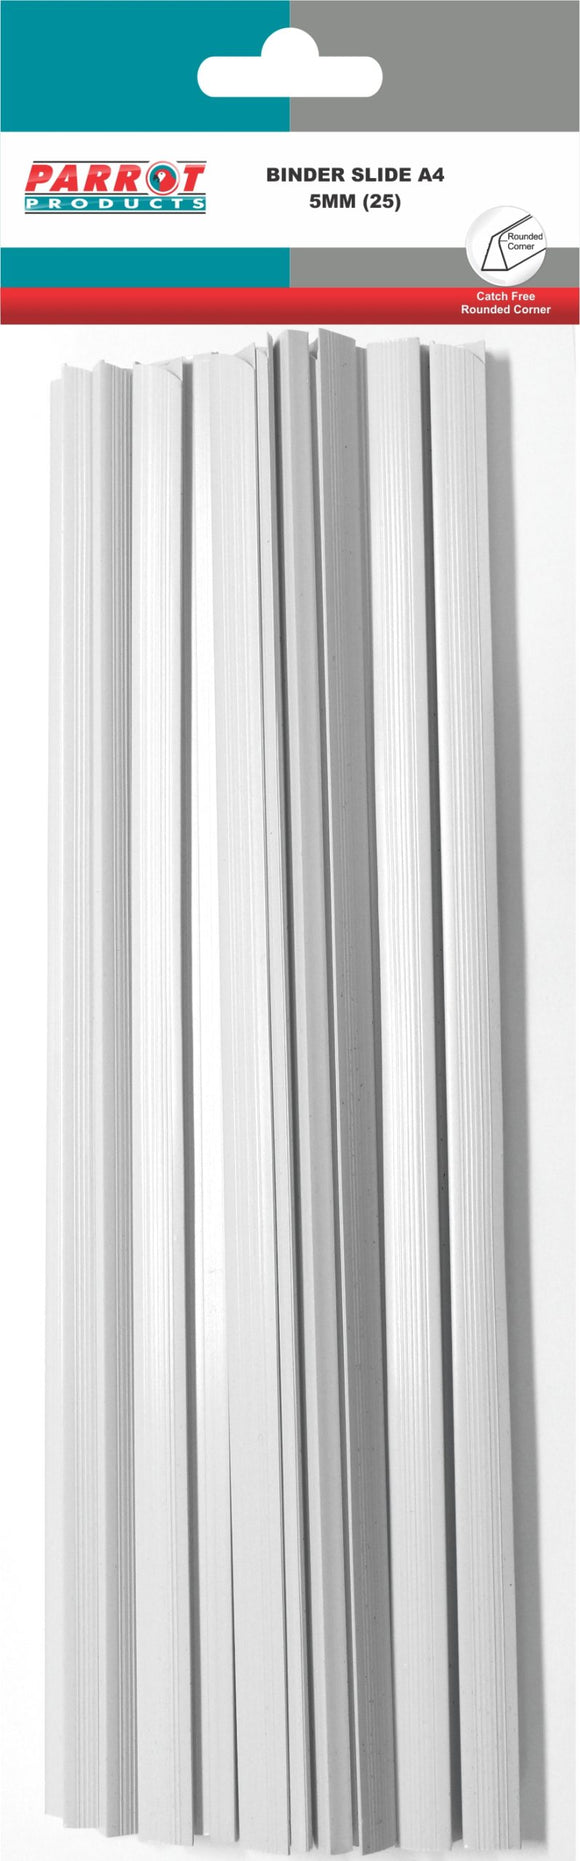 Binder Slide A 4 297 X 7mm White 25